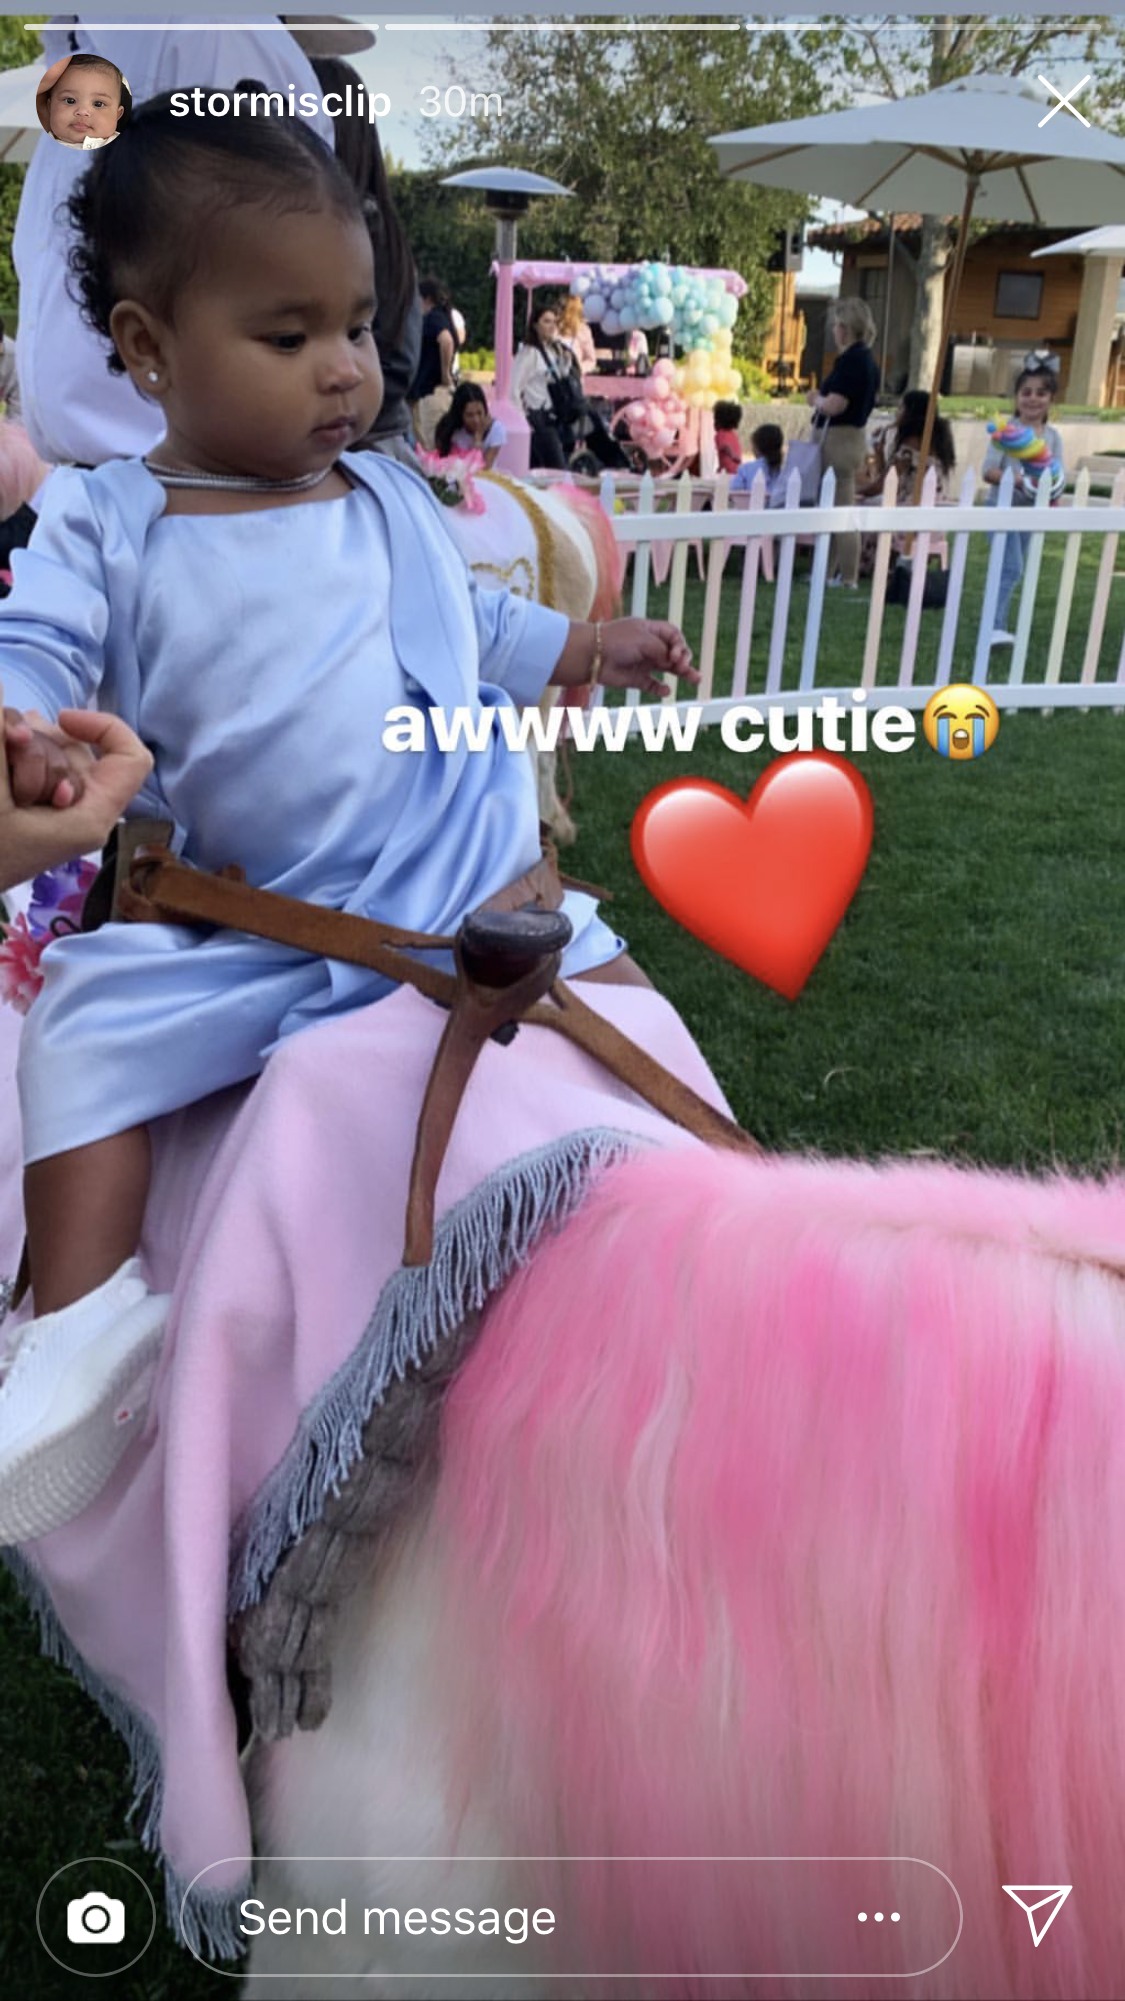 Khloe Kardashian and Daughter True Wear Matching Blue Dresses at Her 1st Birthday Party - True got to ride on a pony at her party.